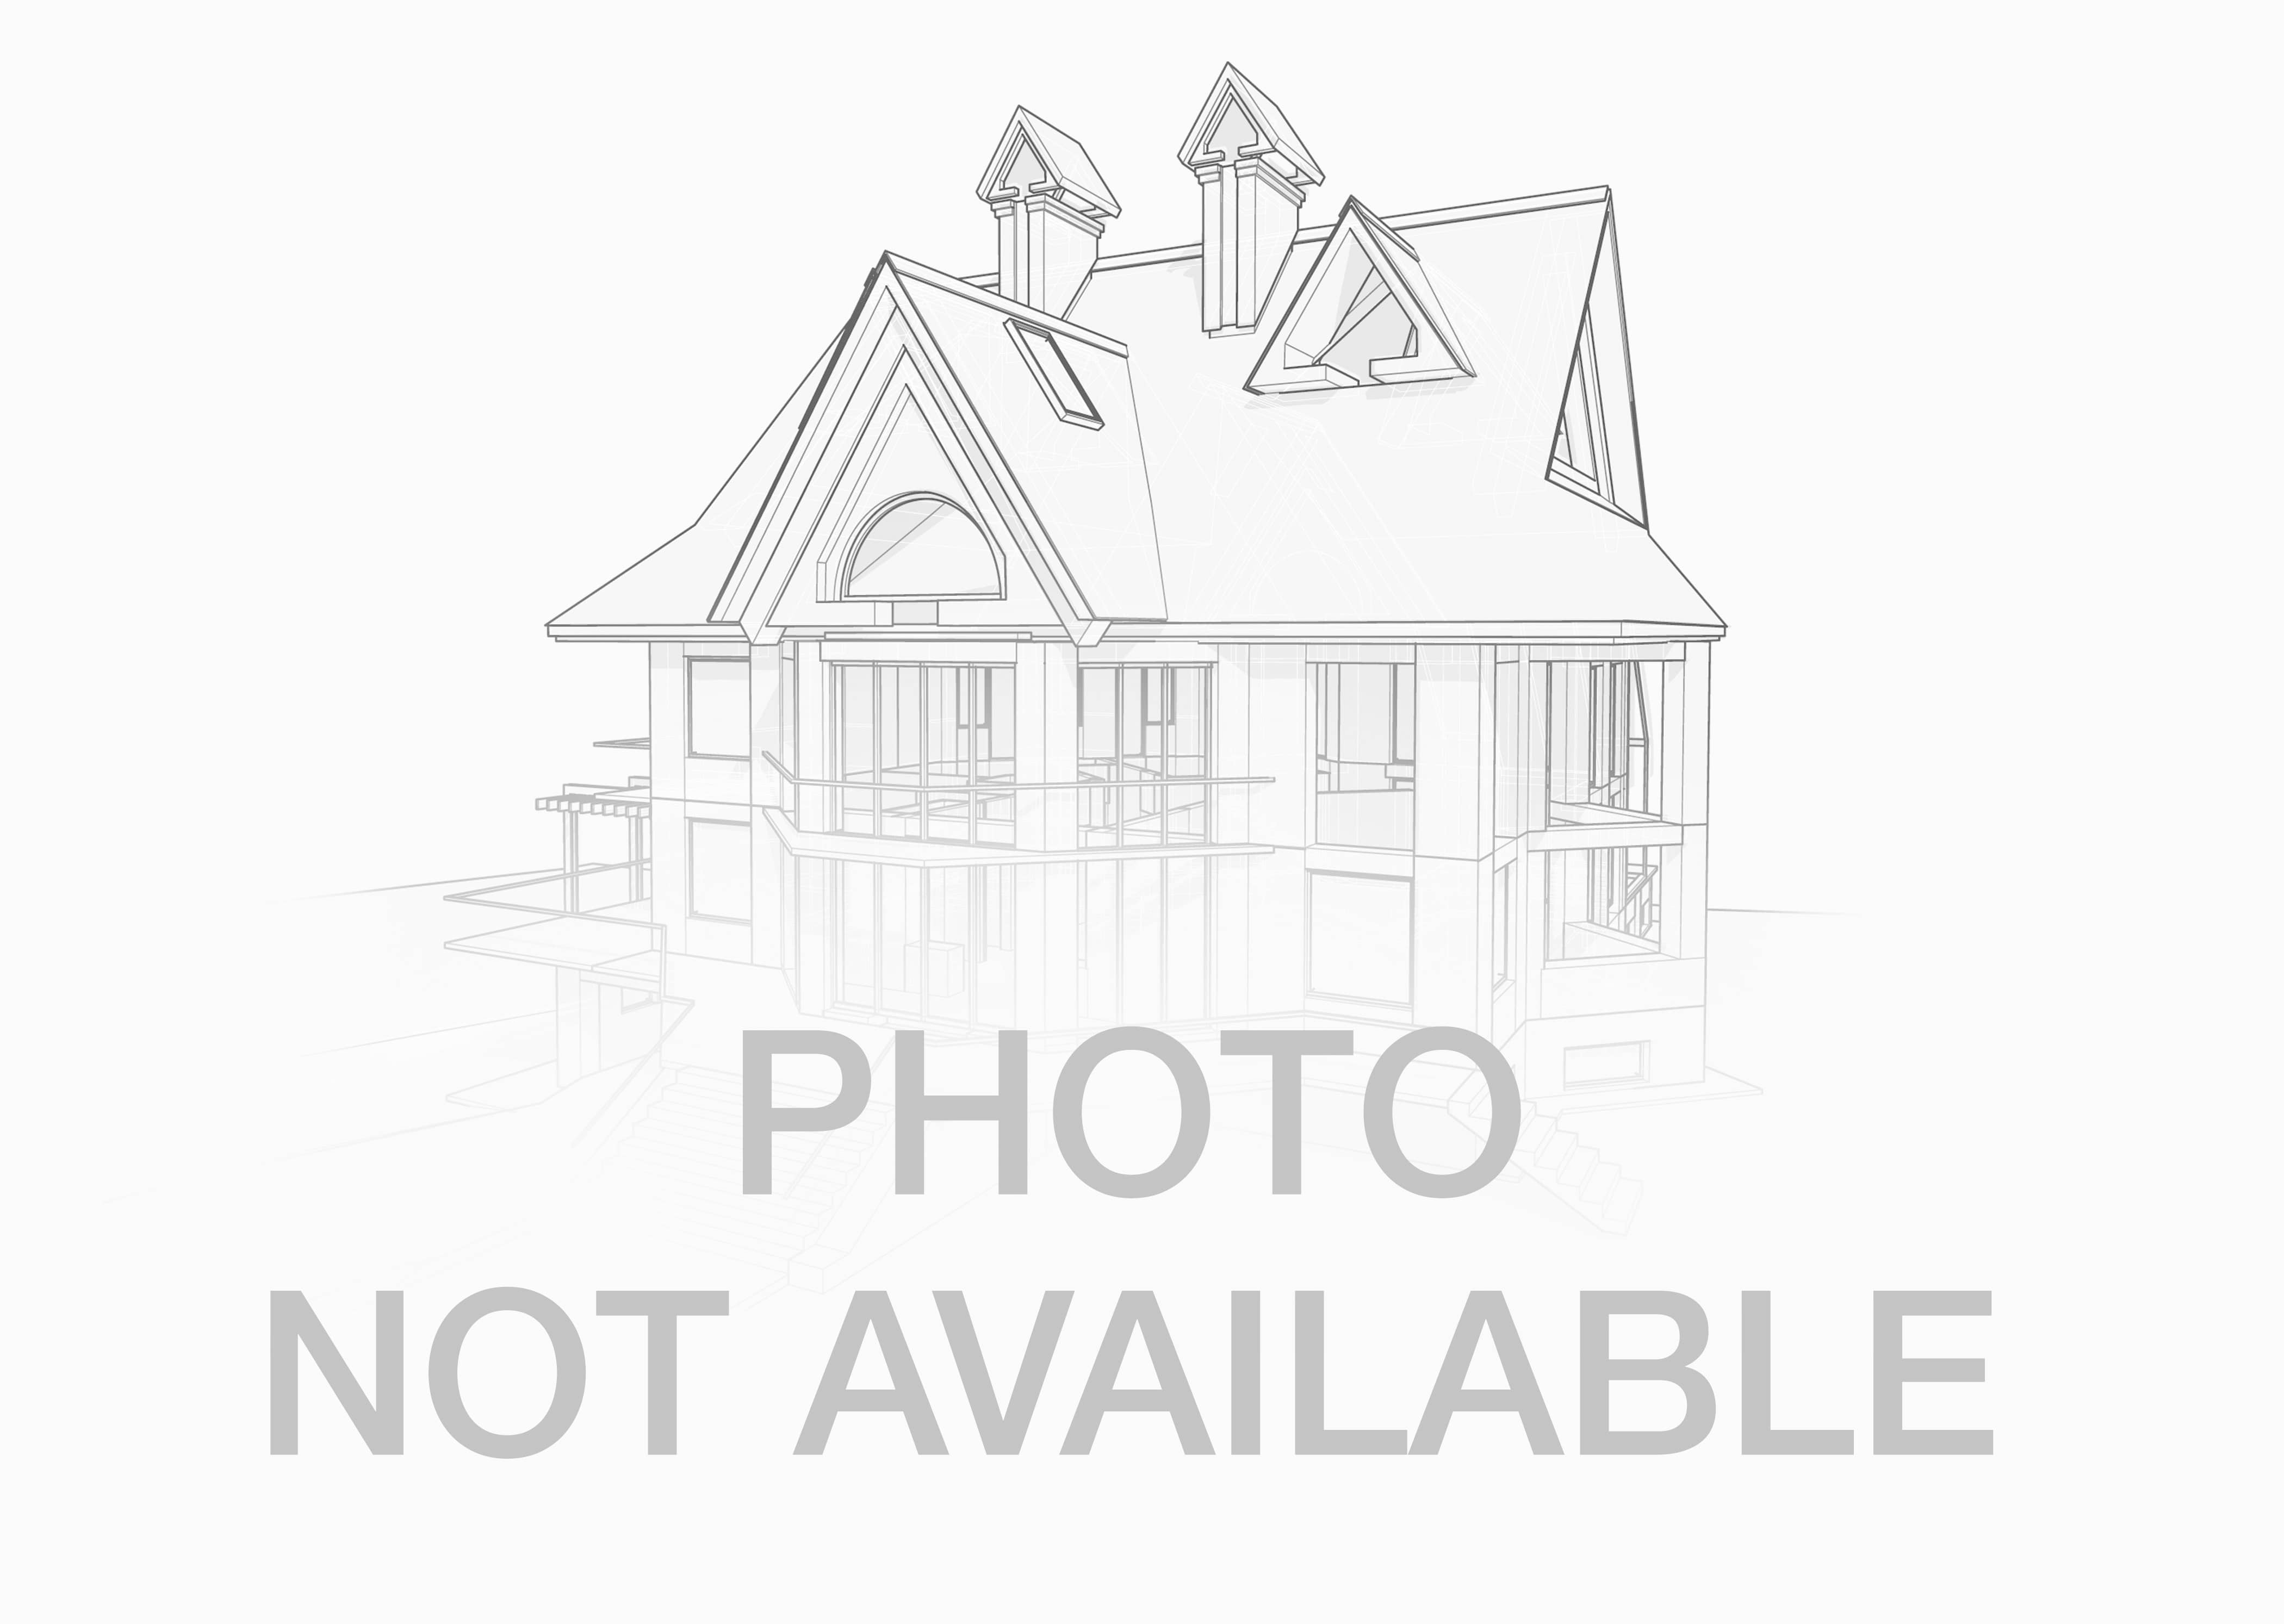 4327 Lakeview Glen Dr, Medina, Oh 44256 - MLS ID 4008572 on